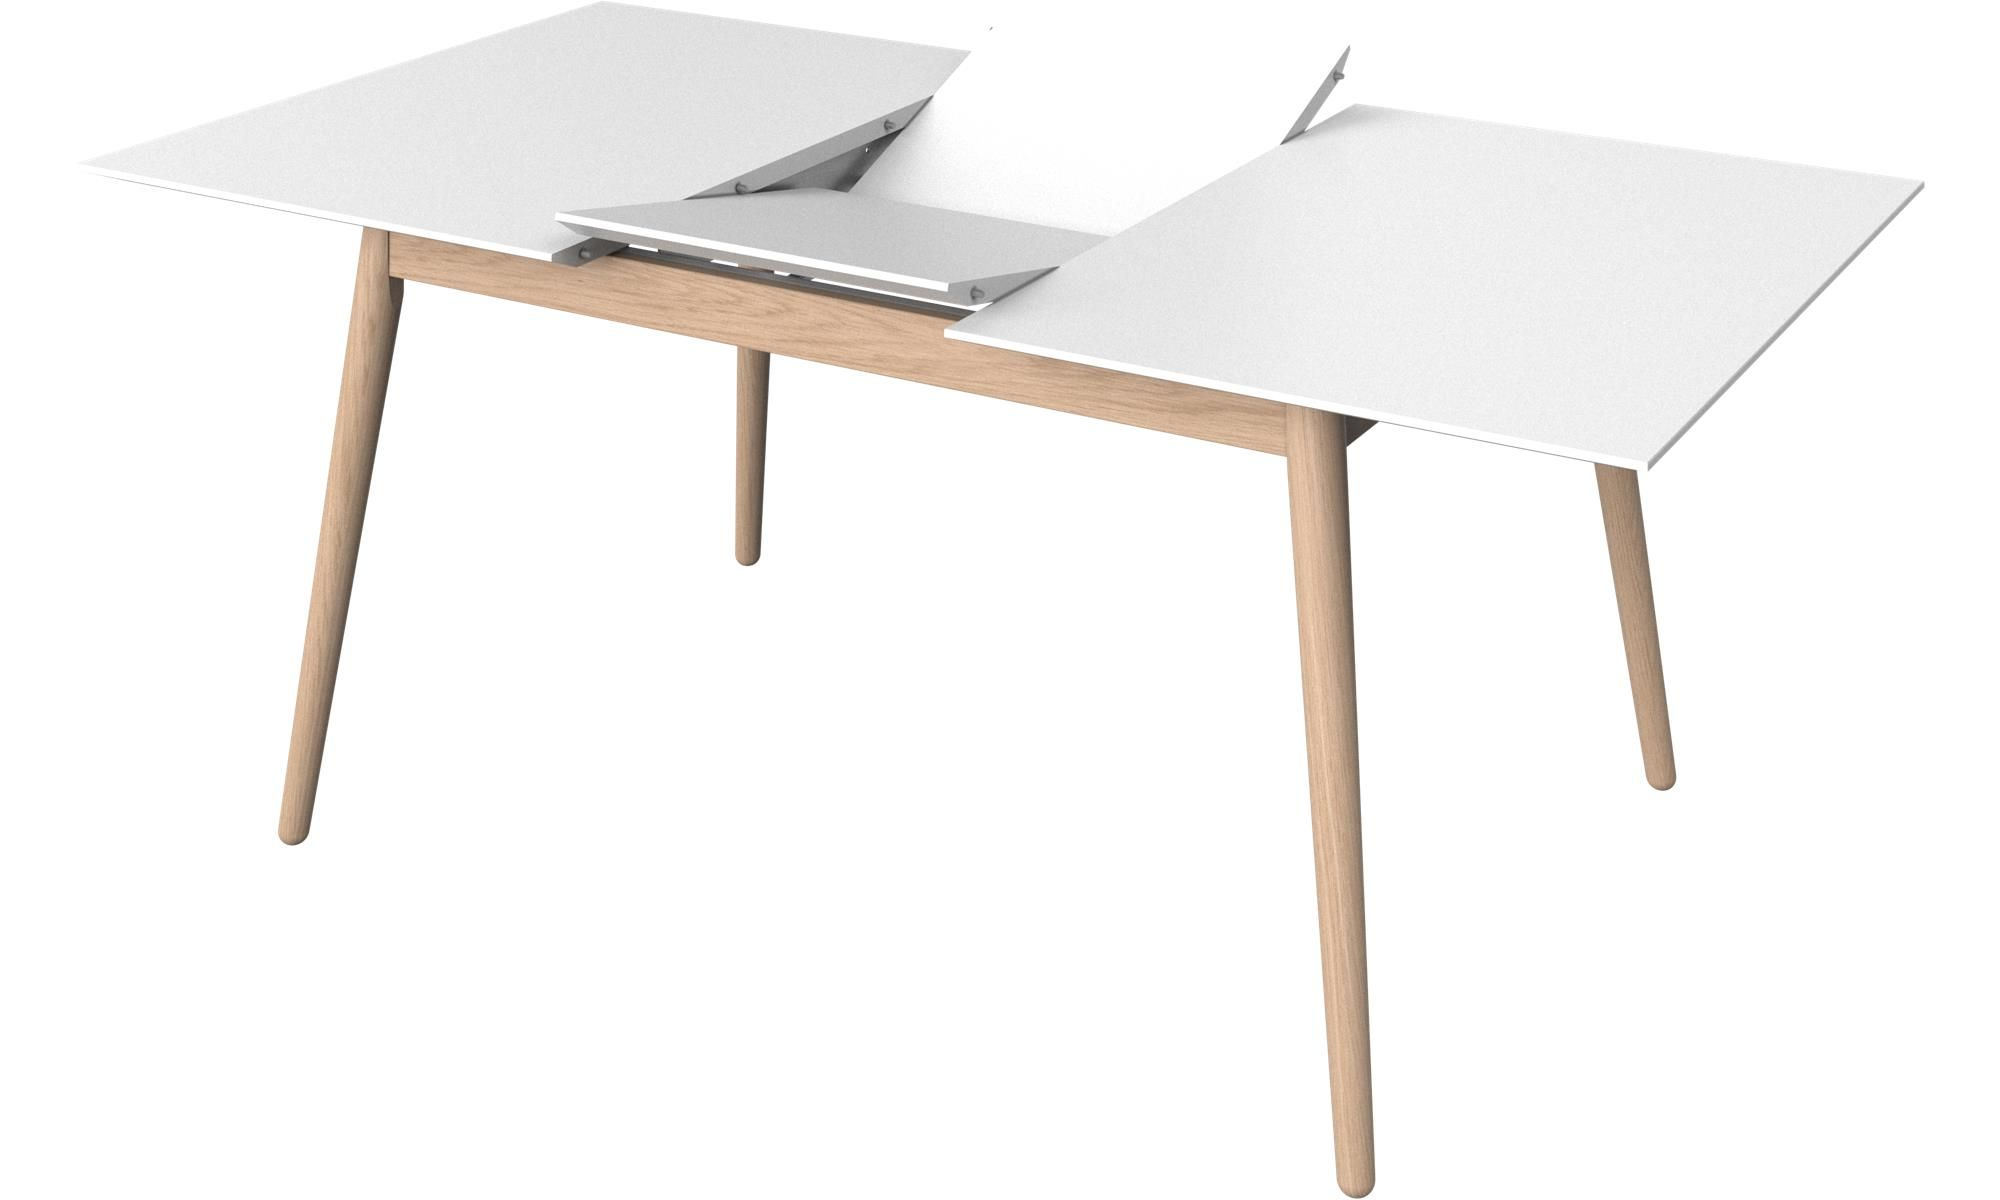 Table carre laque blanc trendy back to post awesome table - Table carree blanc laque avec rallonge ...